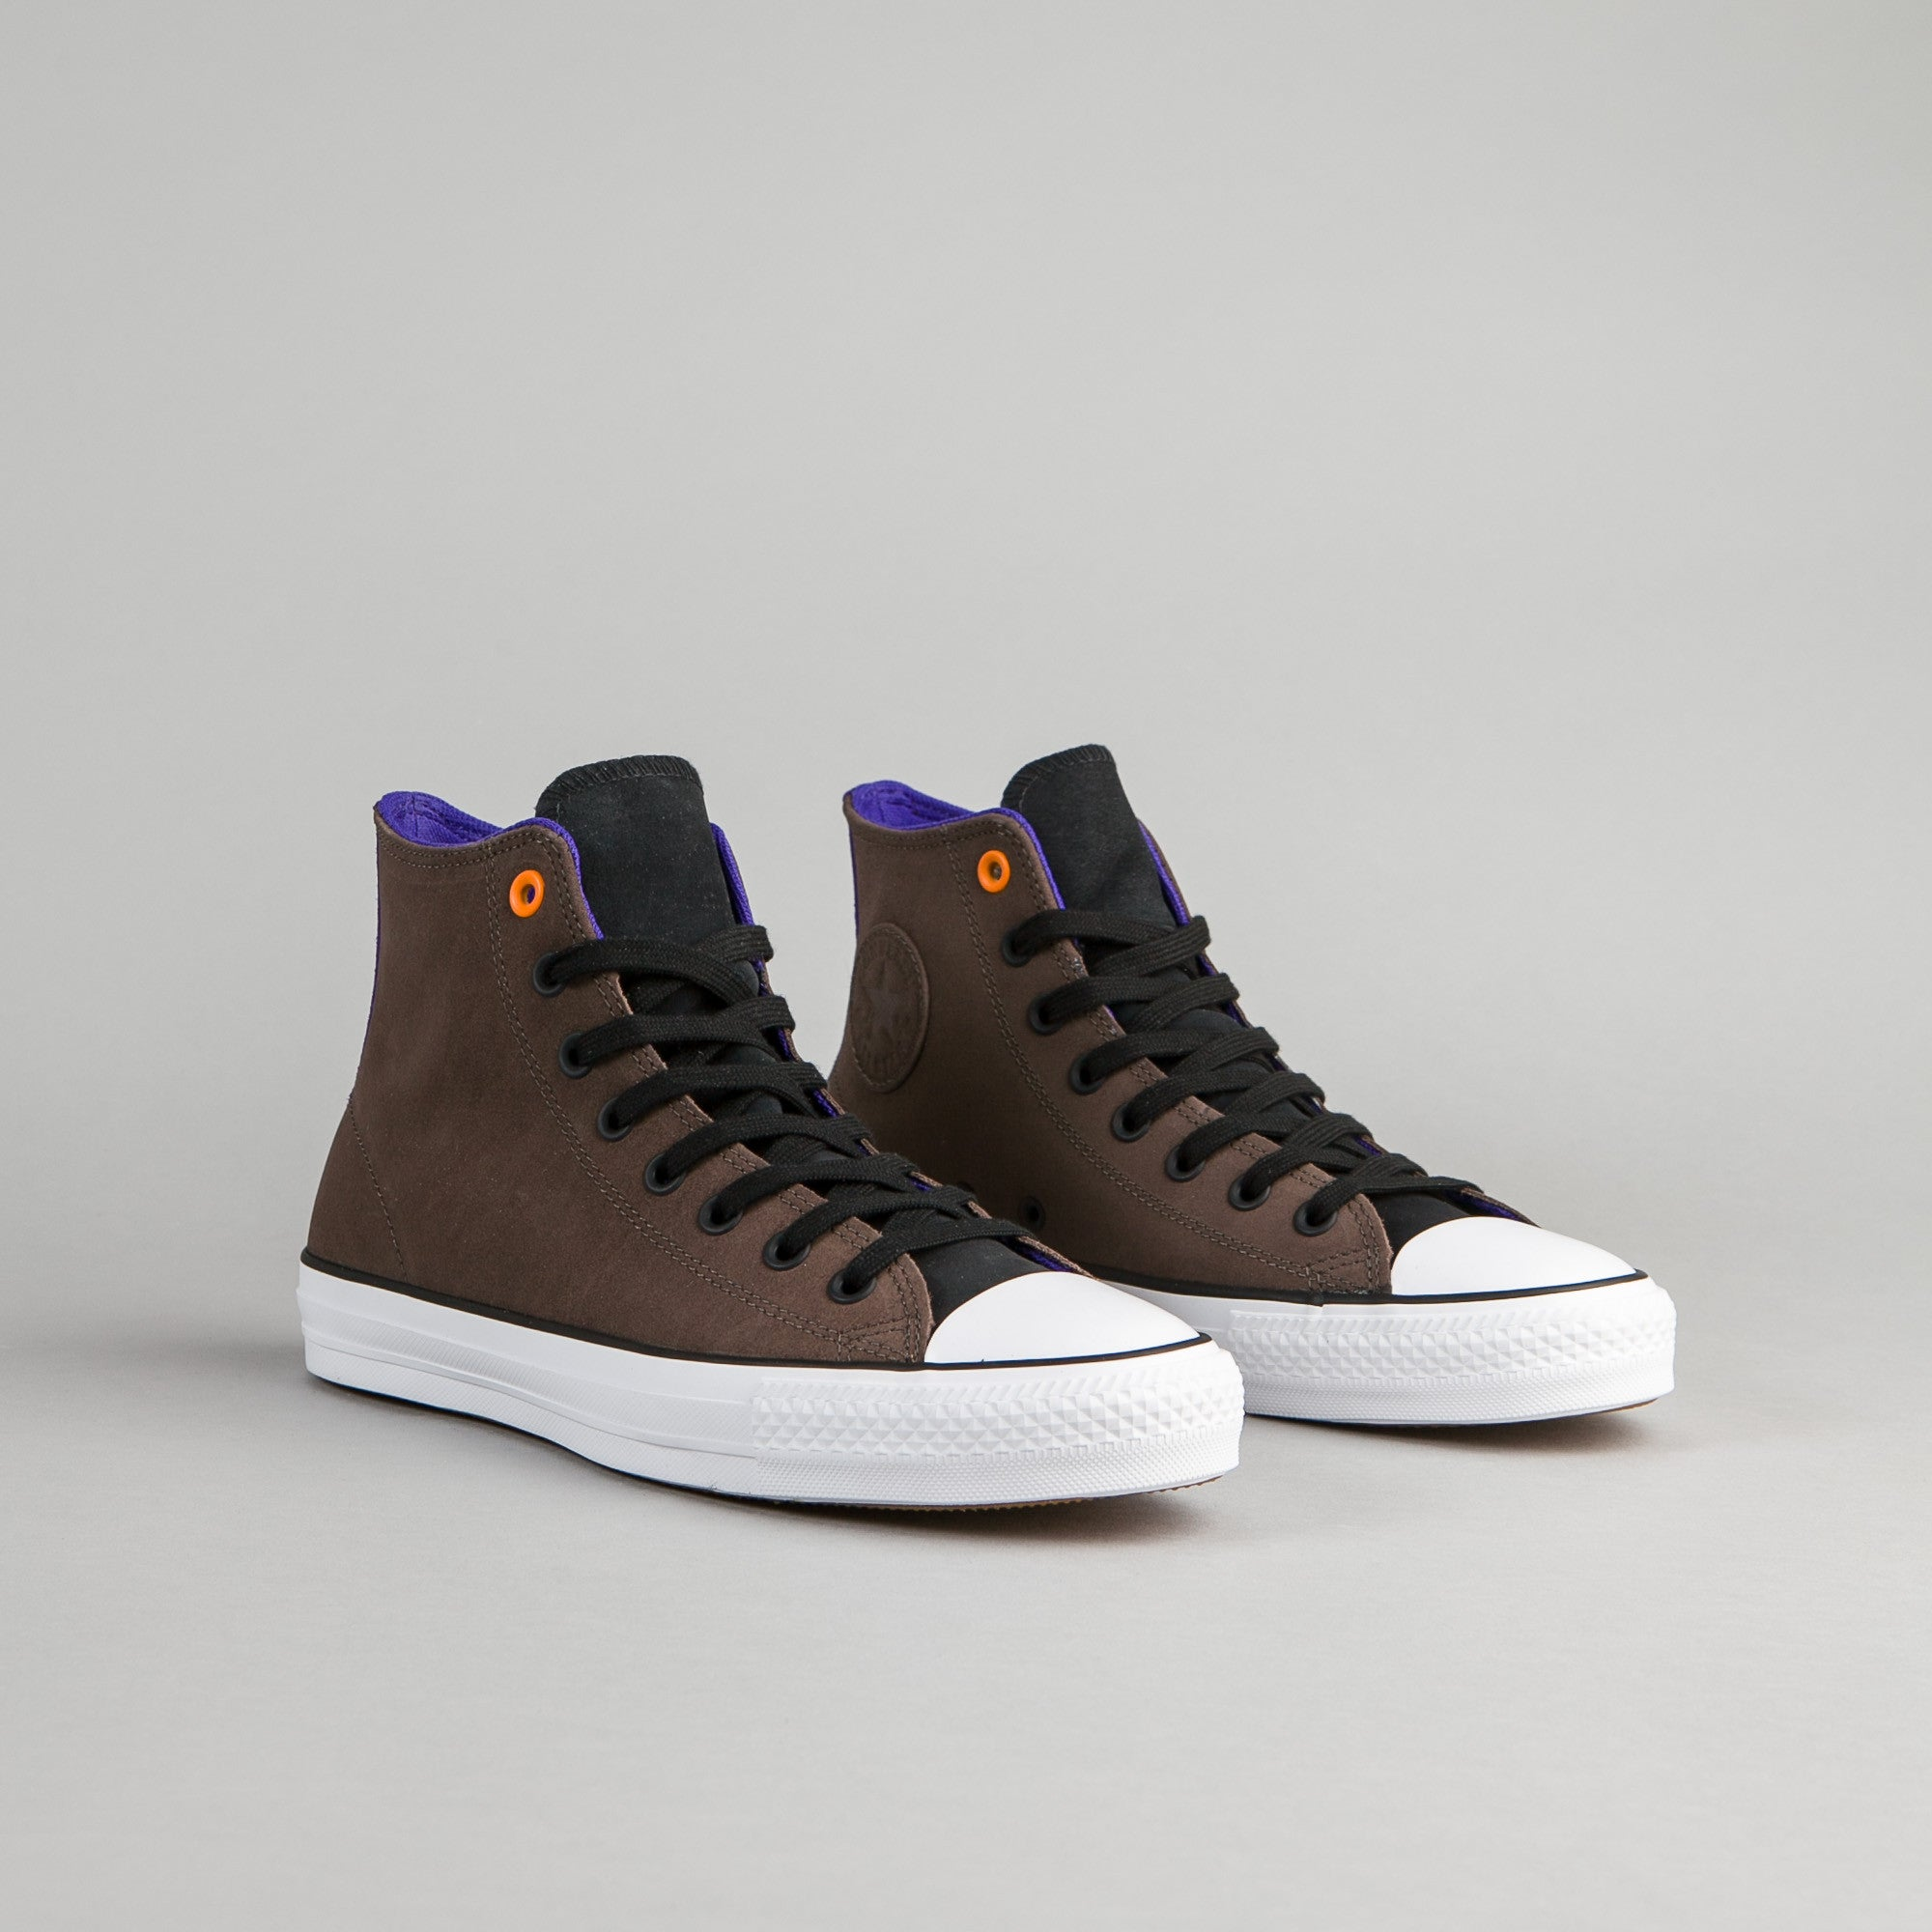 Converse CTAS Pro Leather Hi Shoes - Dark Chocolate / Black / Grape